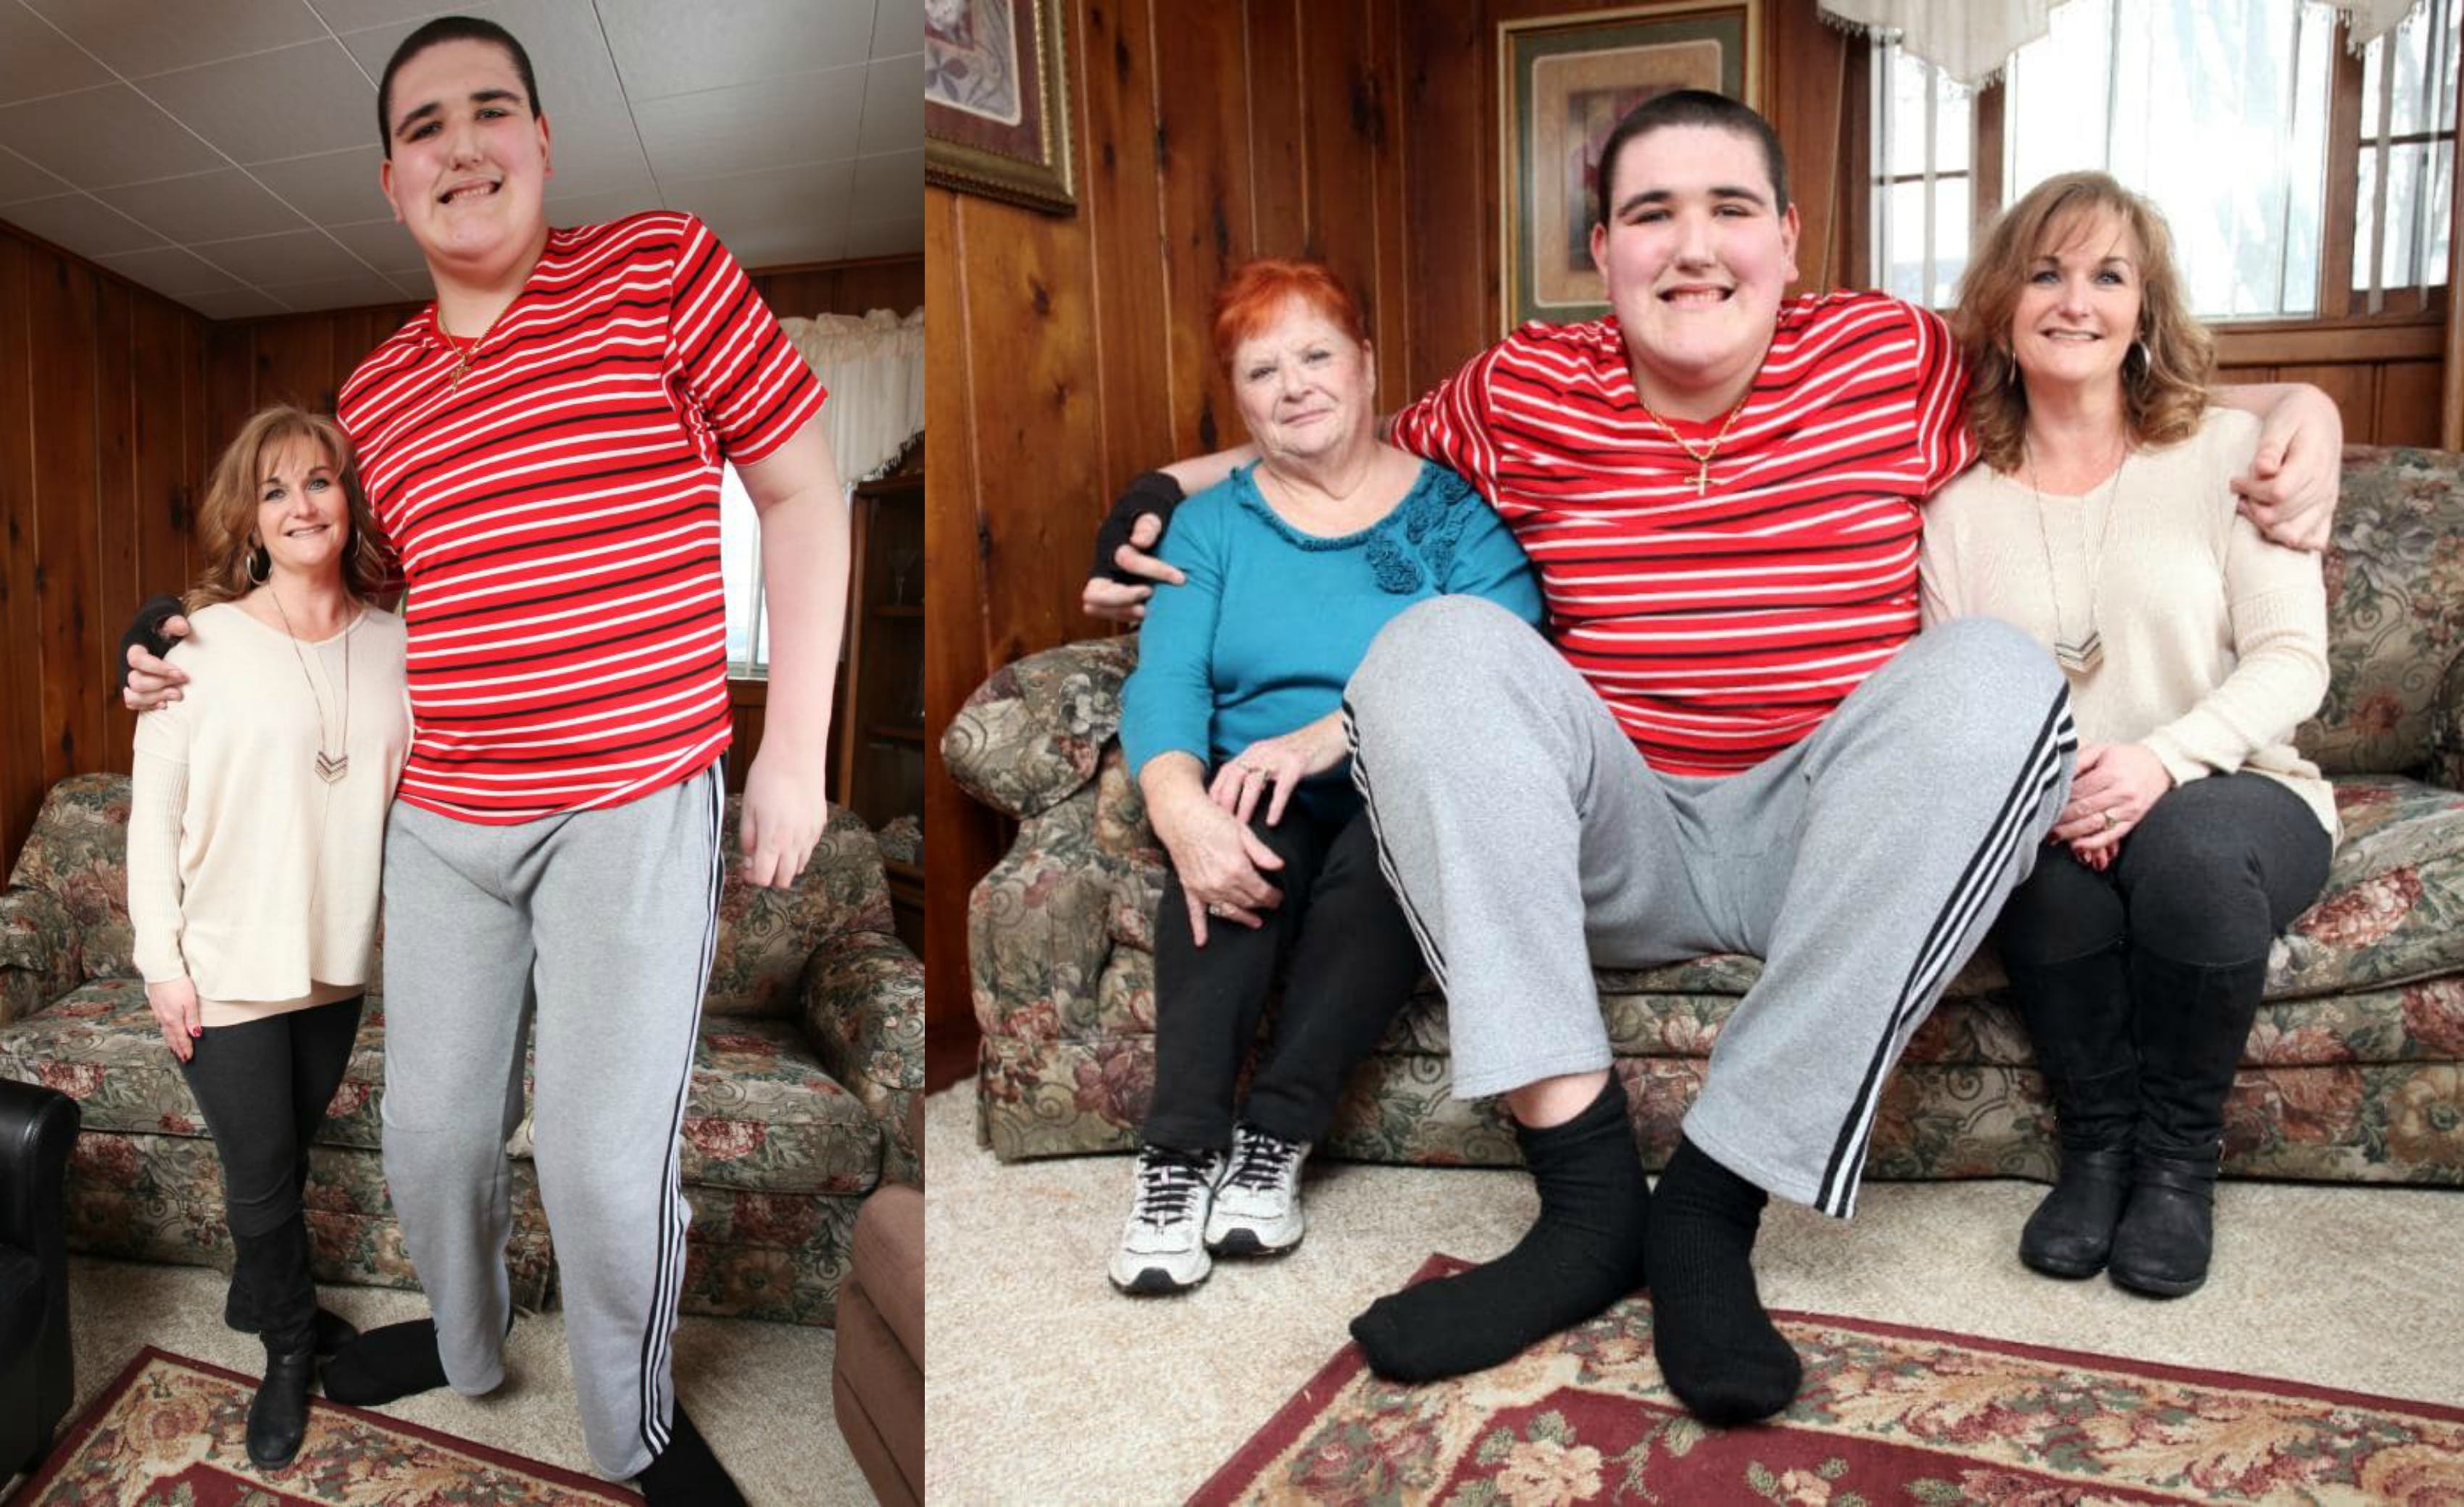 BROC BROWN: Inside The Life Of The U.S.A.'s Tallest Teenager